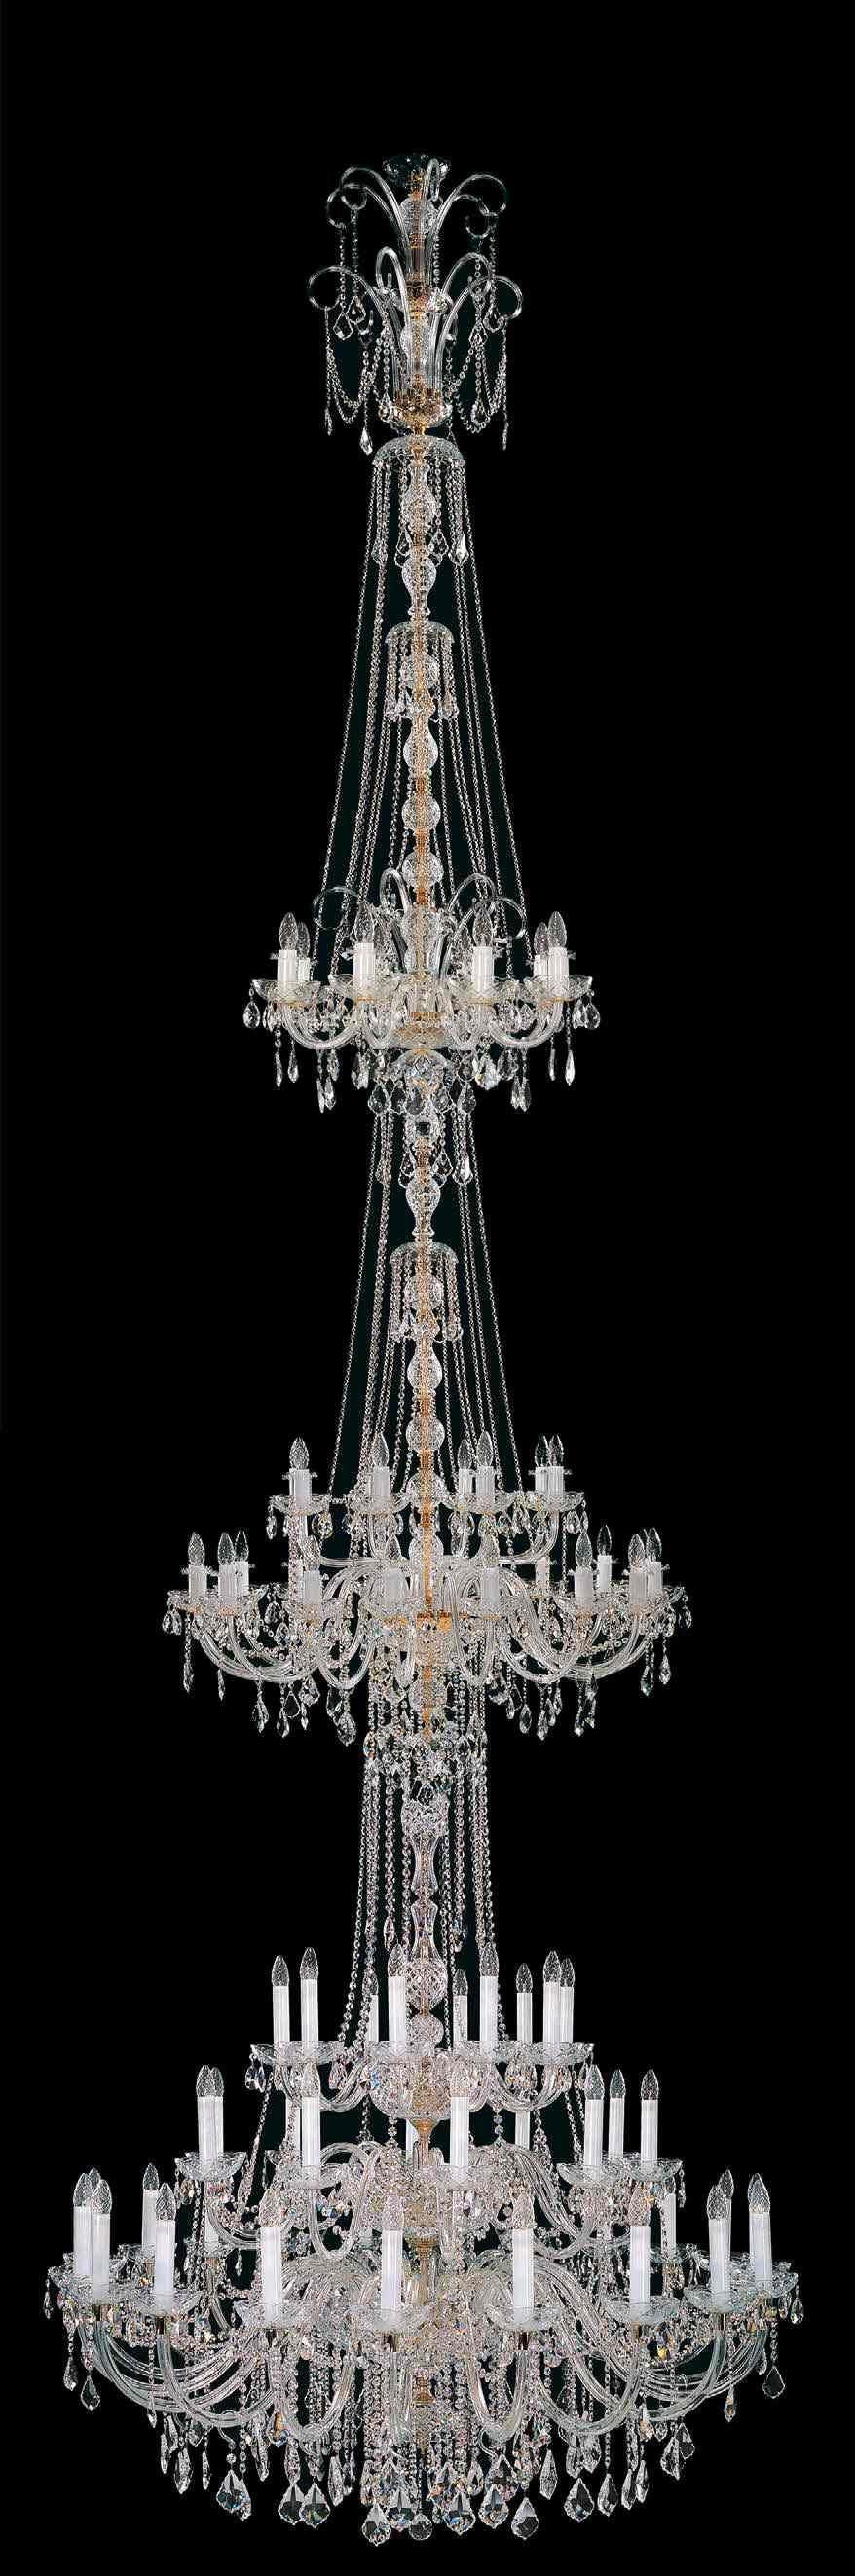 Large and oversized chandelier from the for church, lobby, entryway and yet Berkana USA